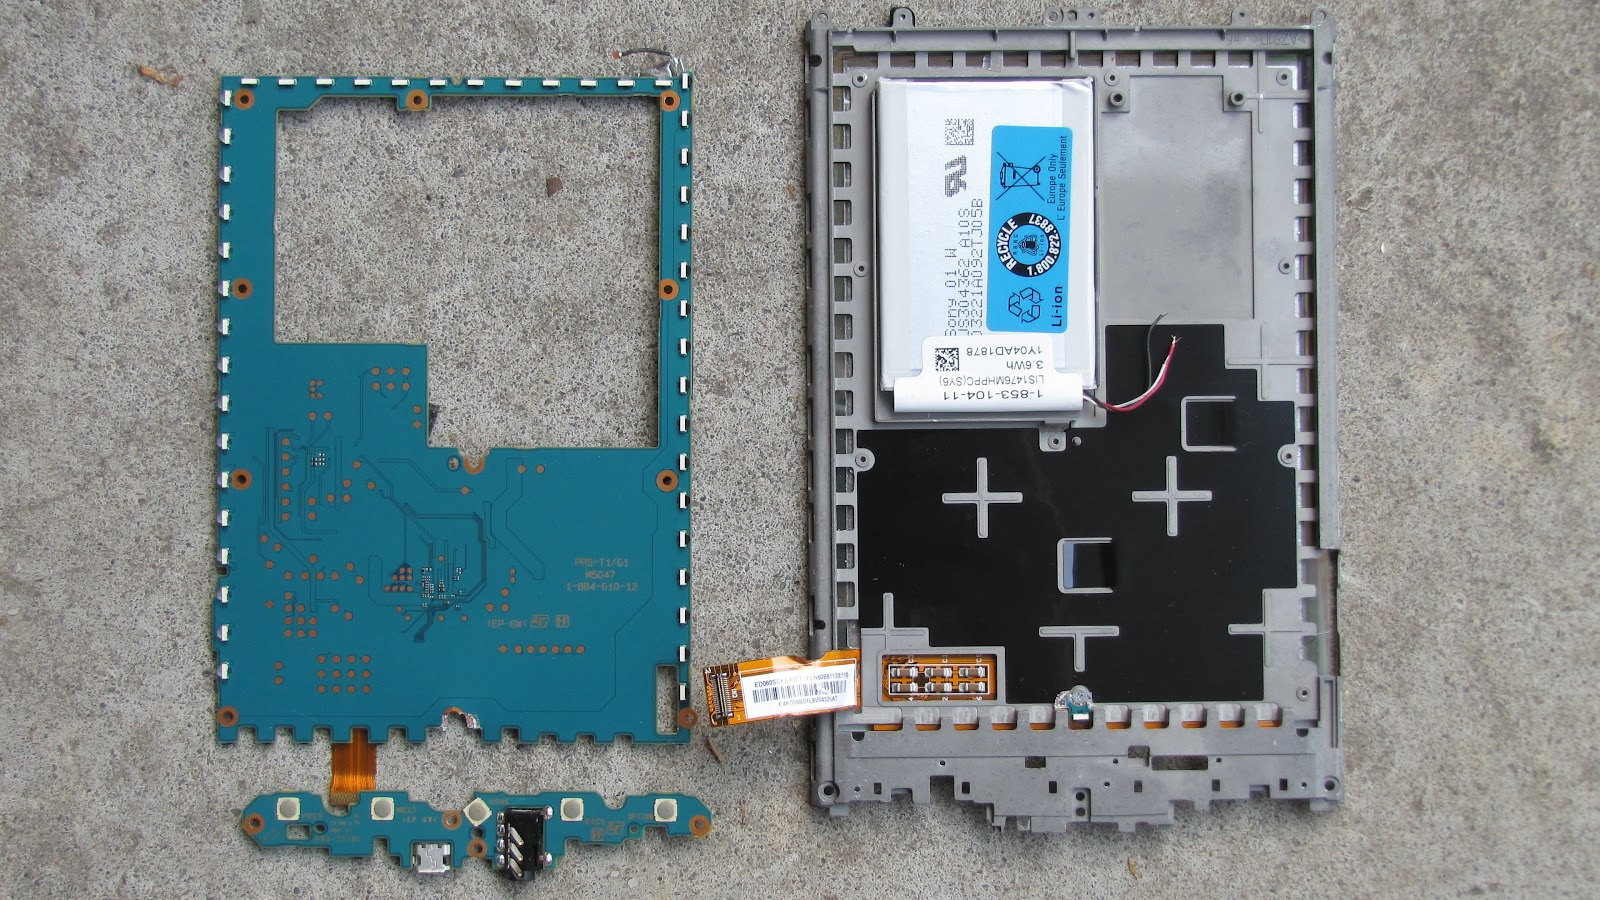 Technical vaults inside a sony prs t1 reader right click and save or open in a new tabwindow if you want full resolution to zoom in on publicscrutiny Images